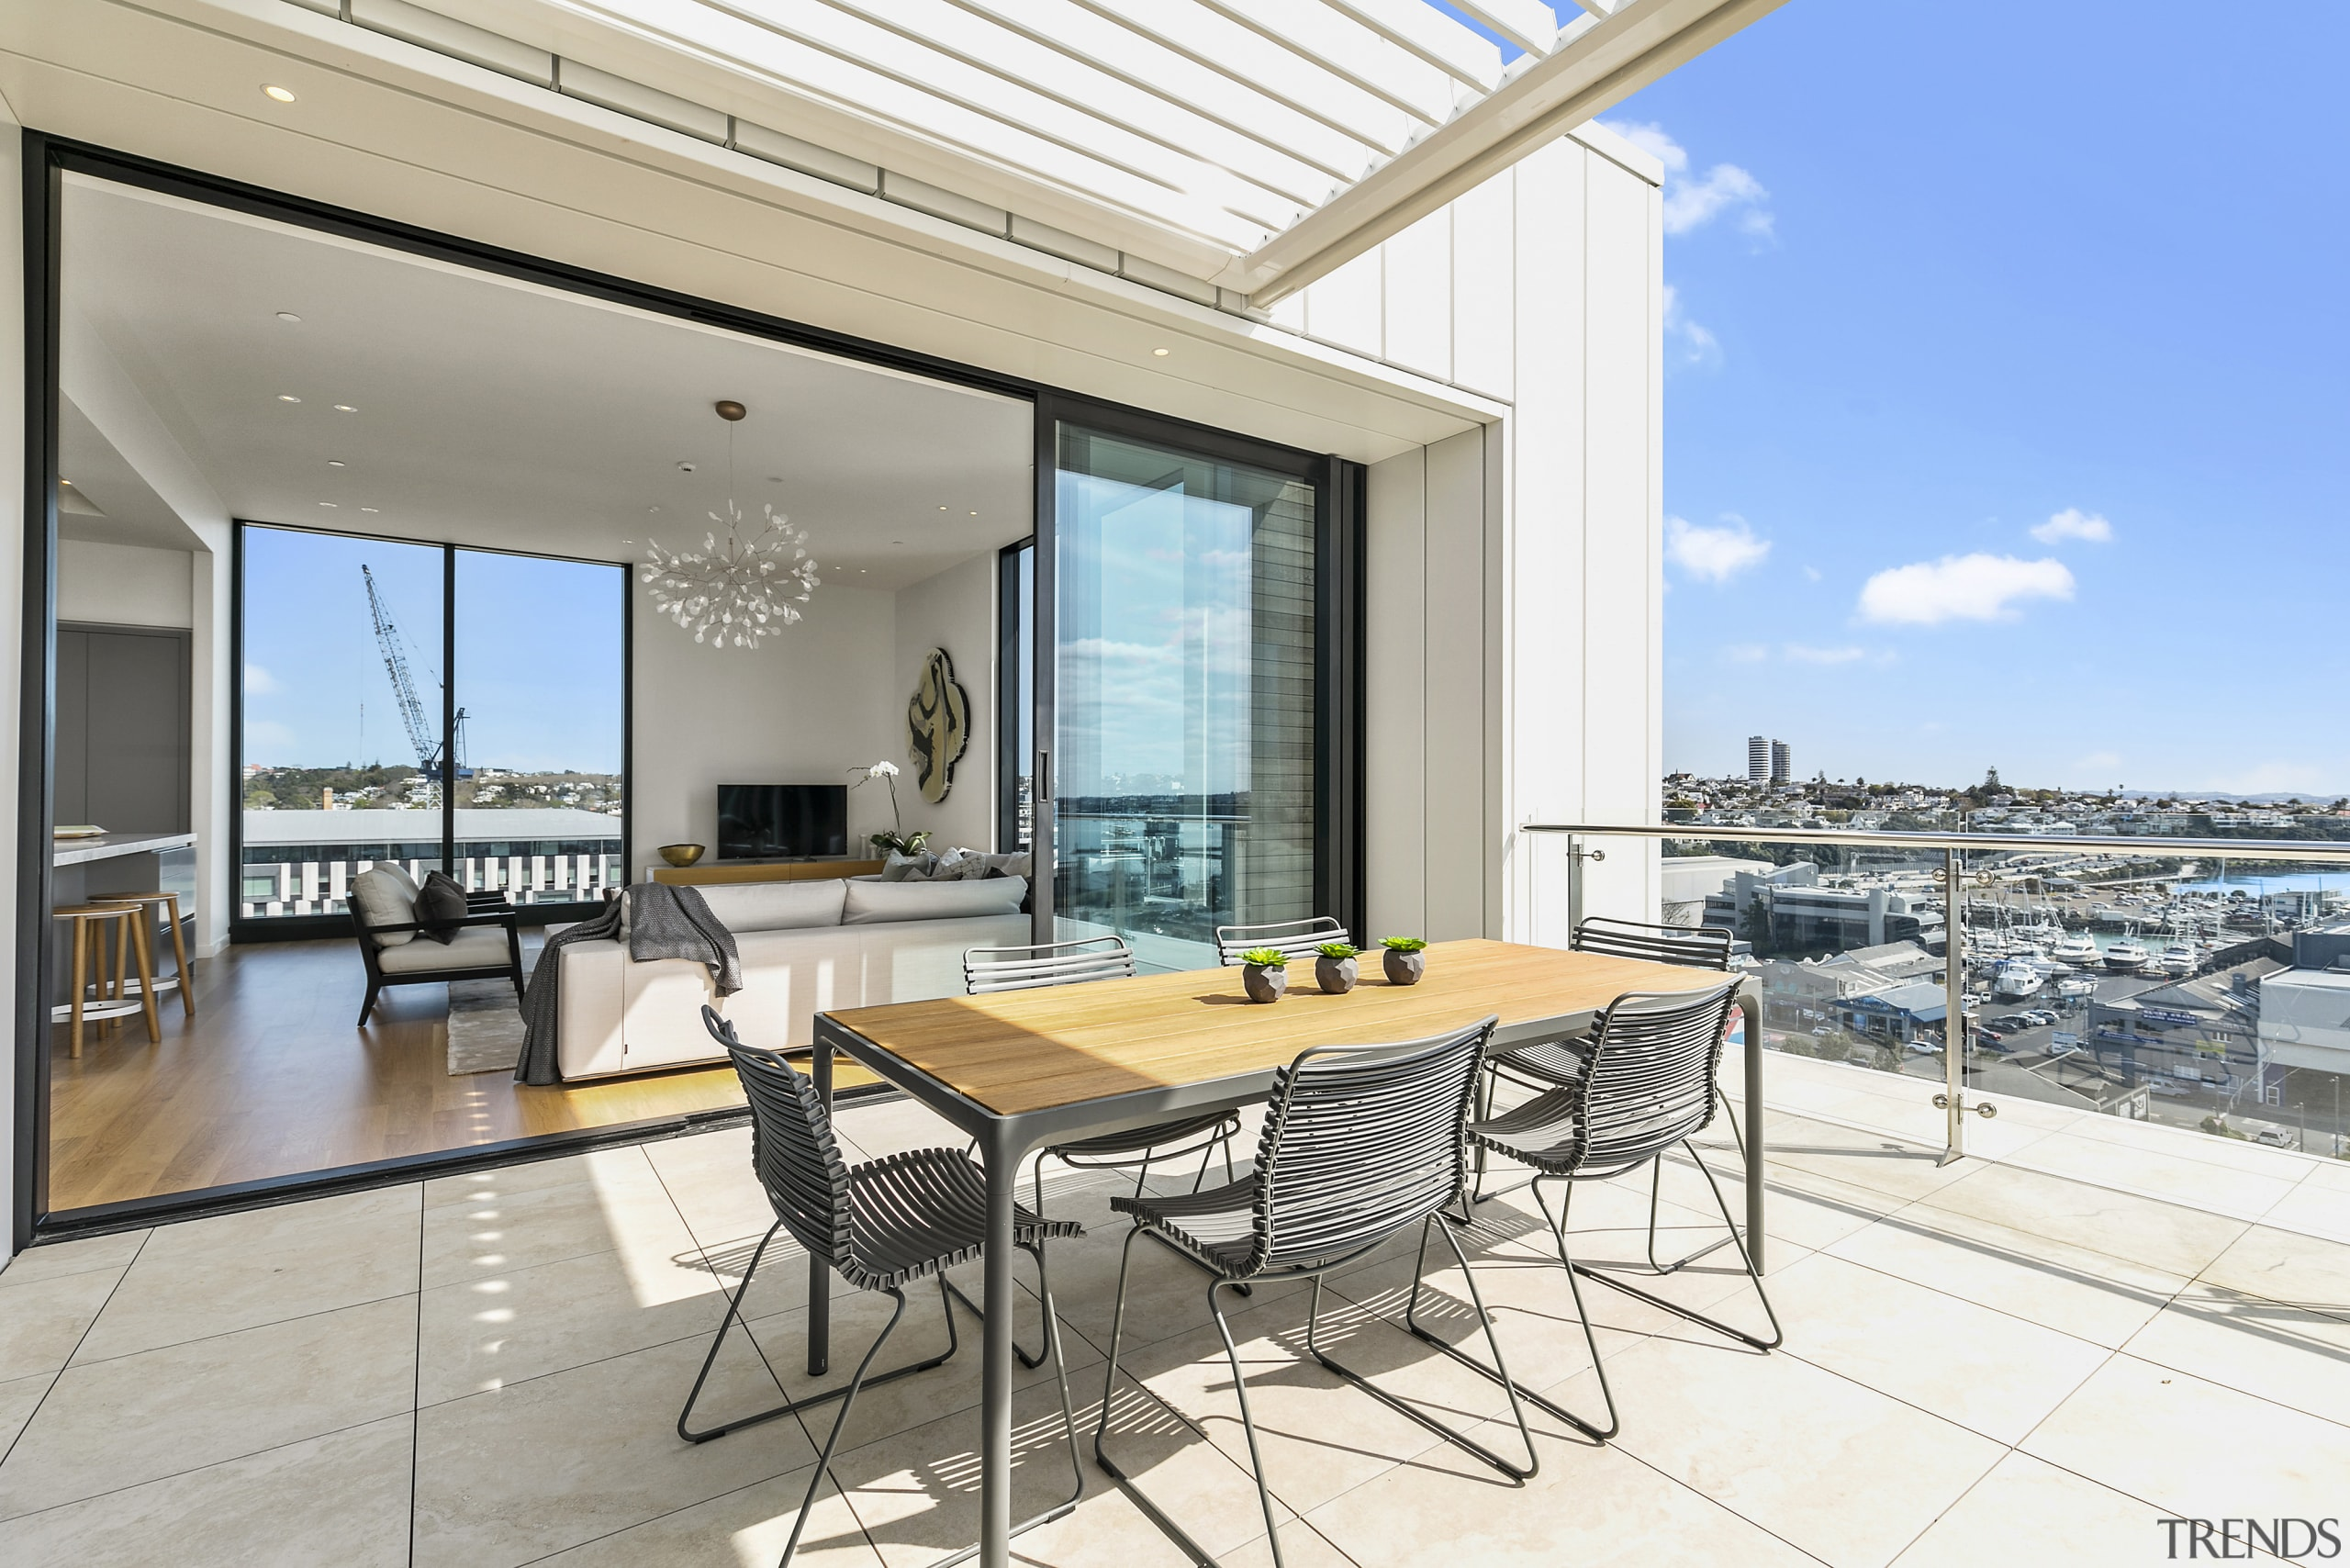 These pages:The Apartments residences at Wynyard Central include apartment, architecture, building, daylighting, estate, floor, furniture, home, house, interior design, living room, penthouse apartment, property, real estate, roof, room, table, window, white